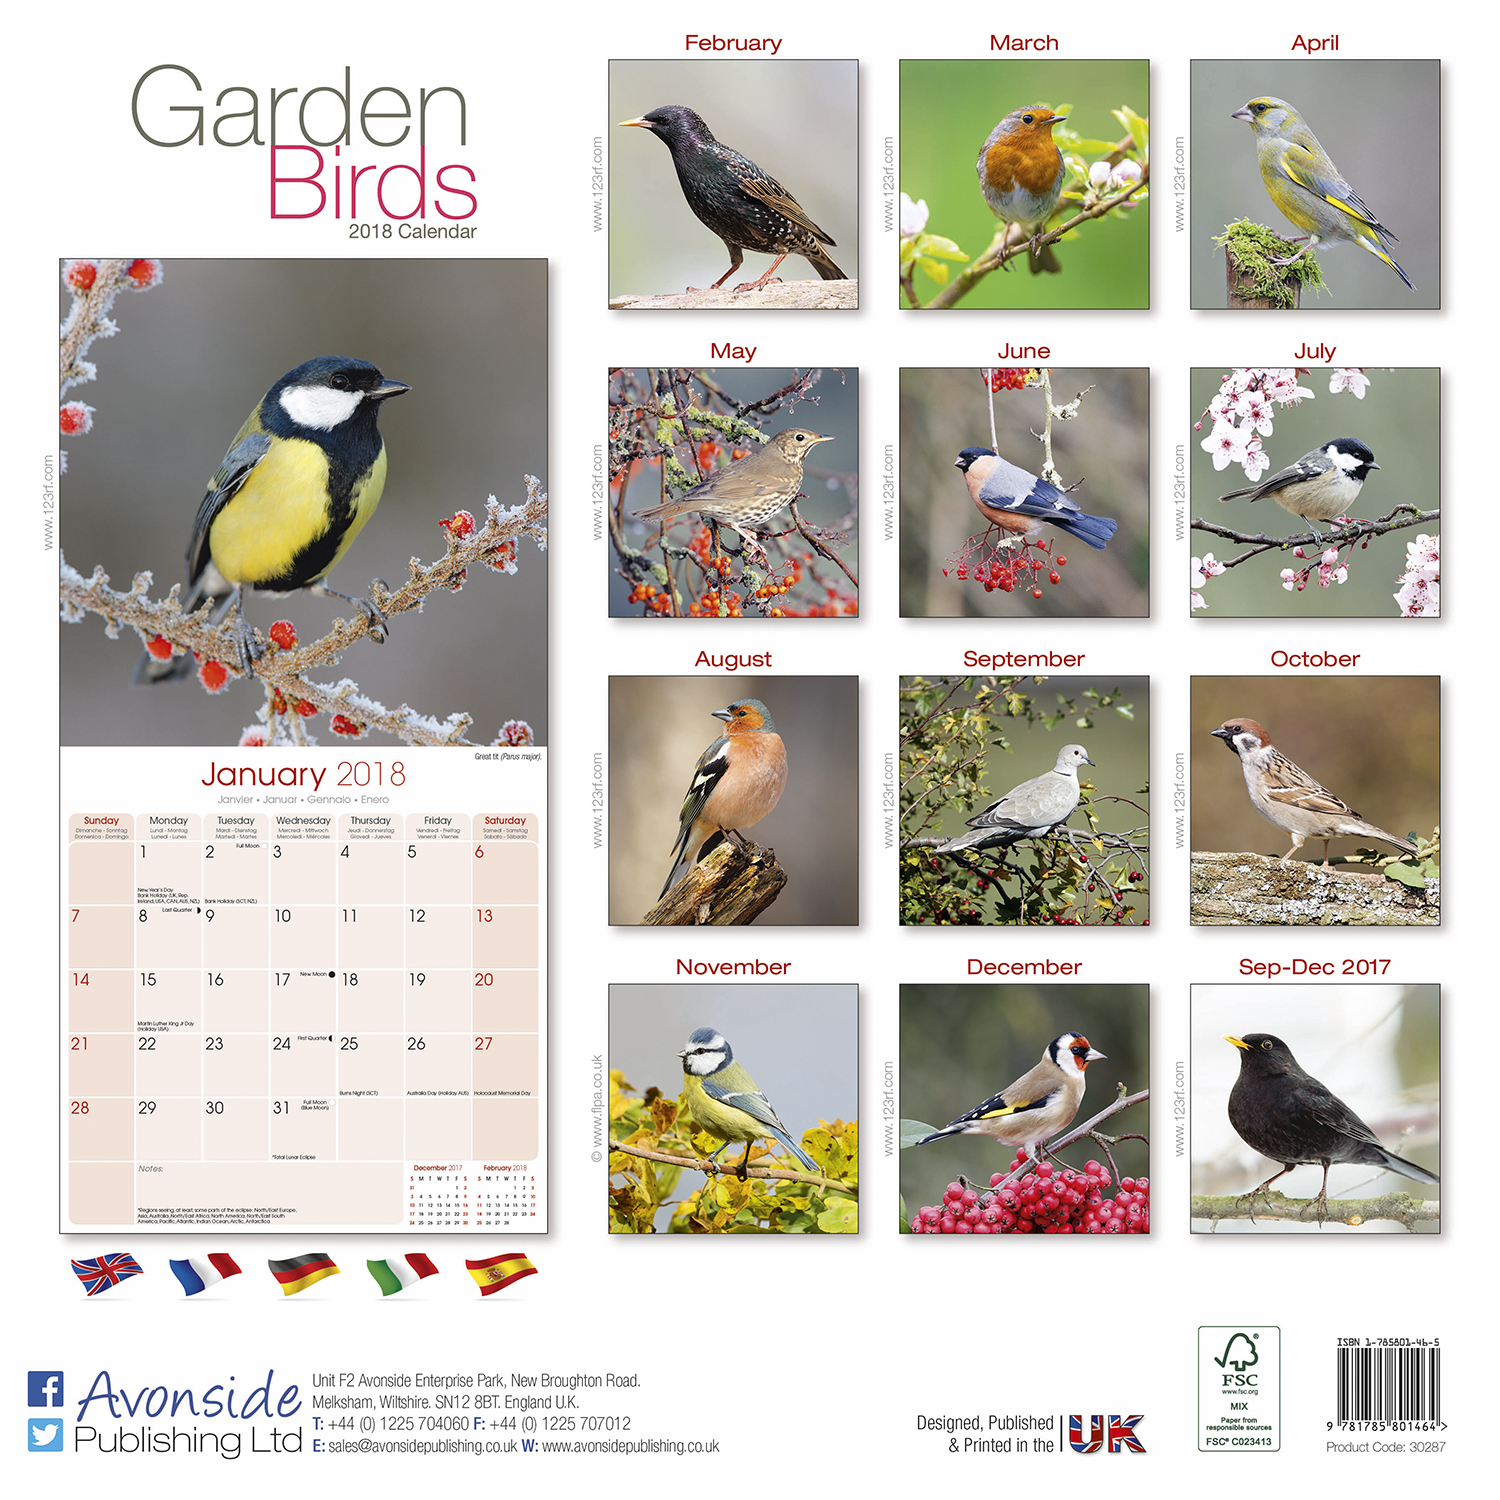 Garden birds calendar 2018 pet prints inc for Gardening 2018 calendar